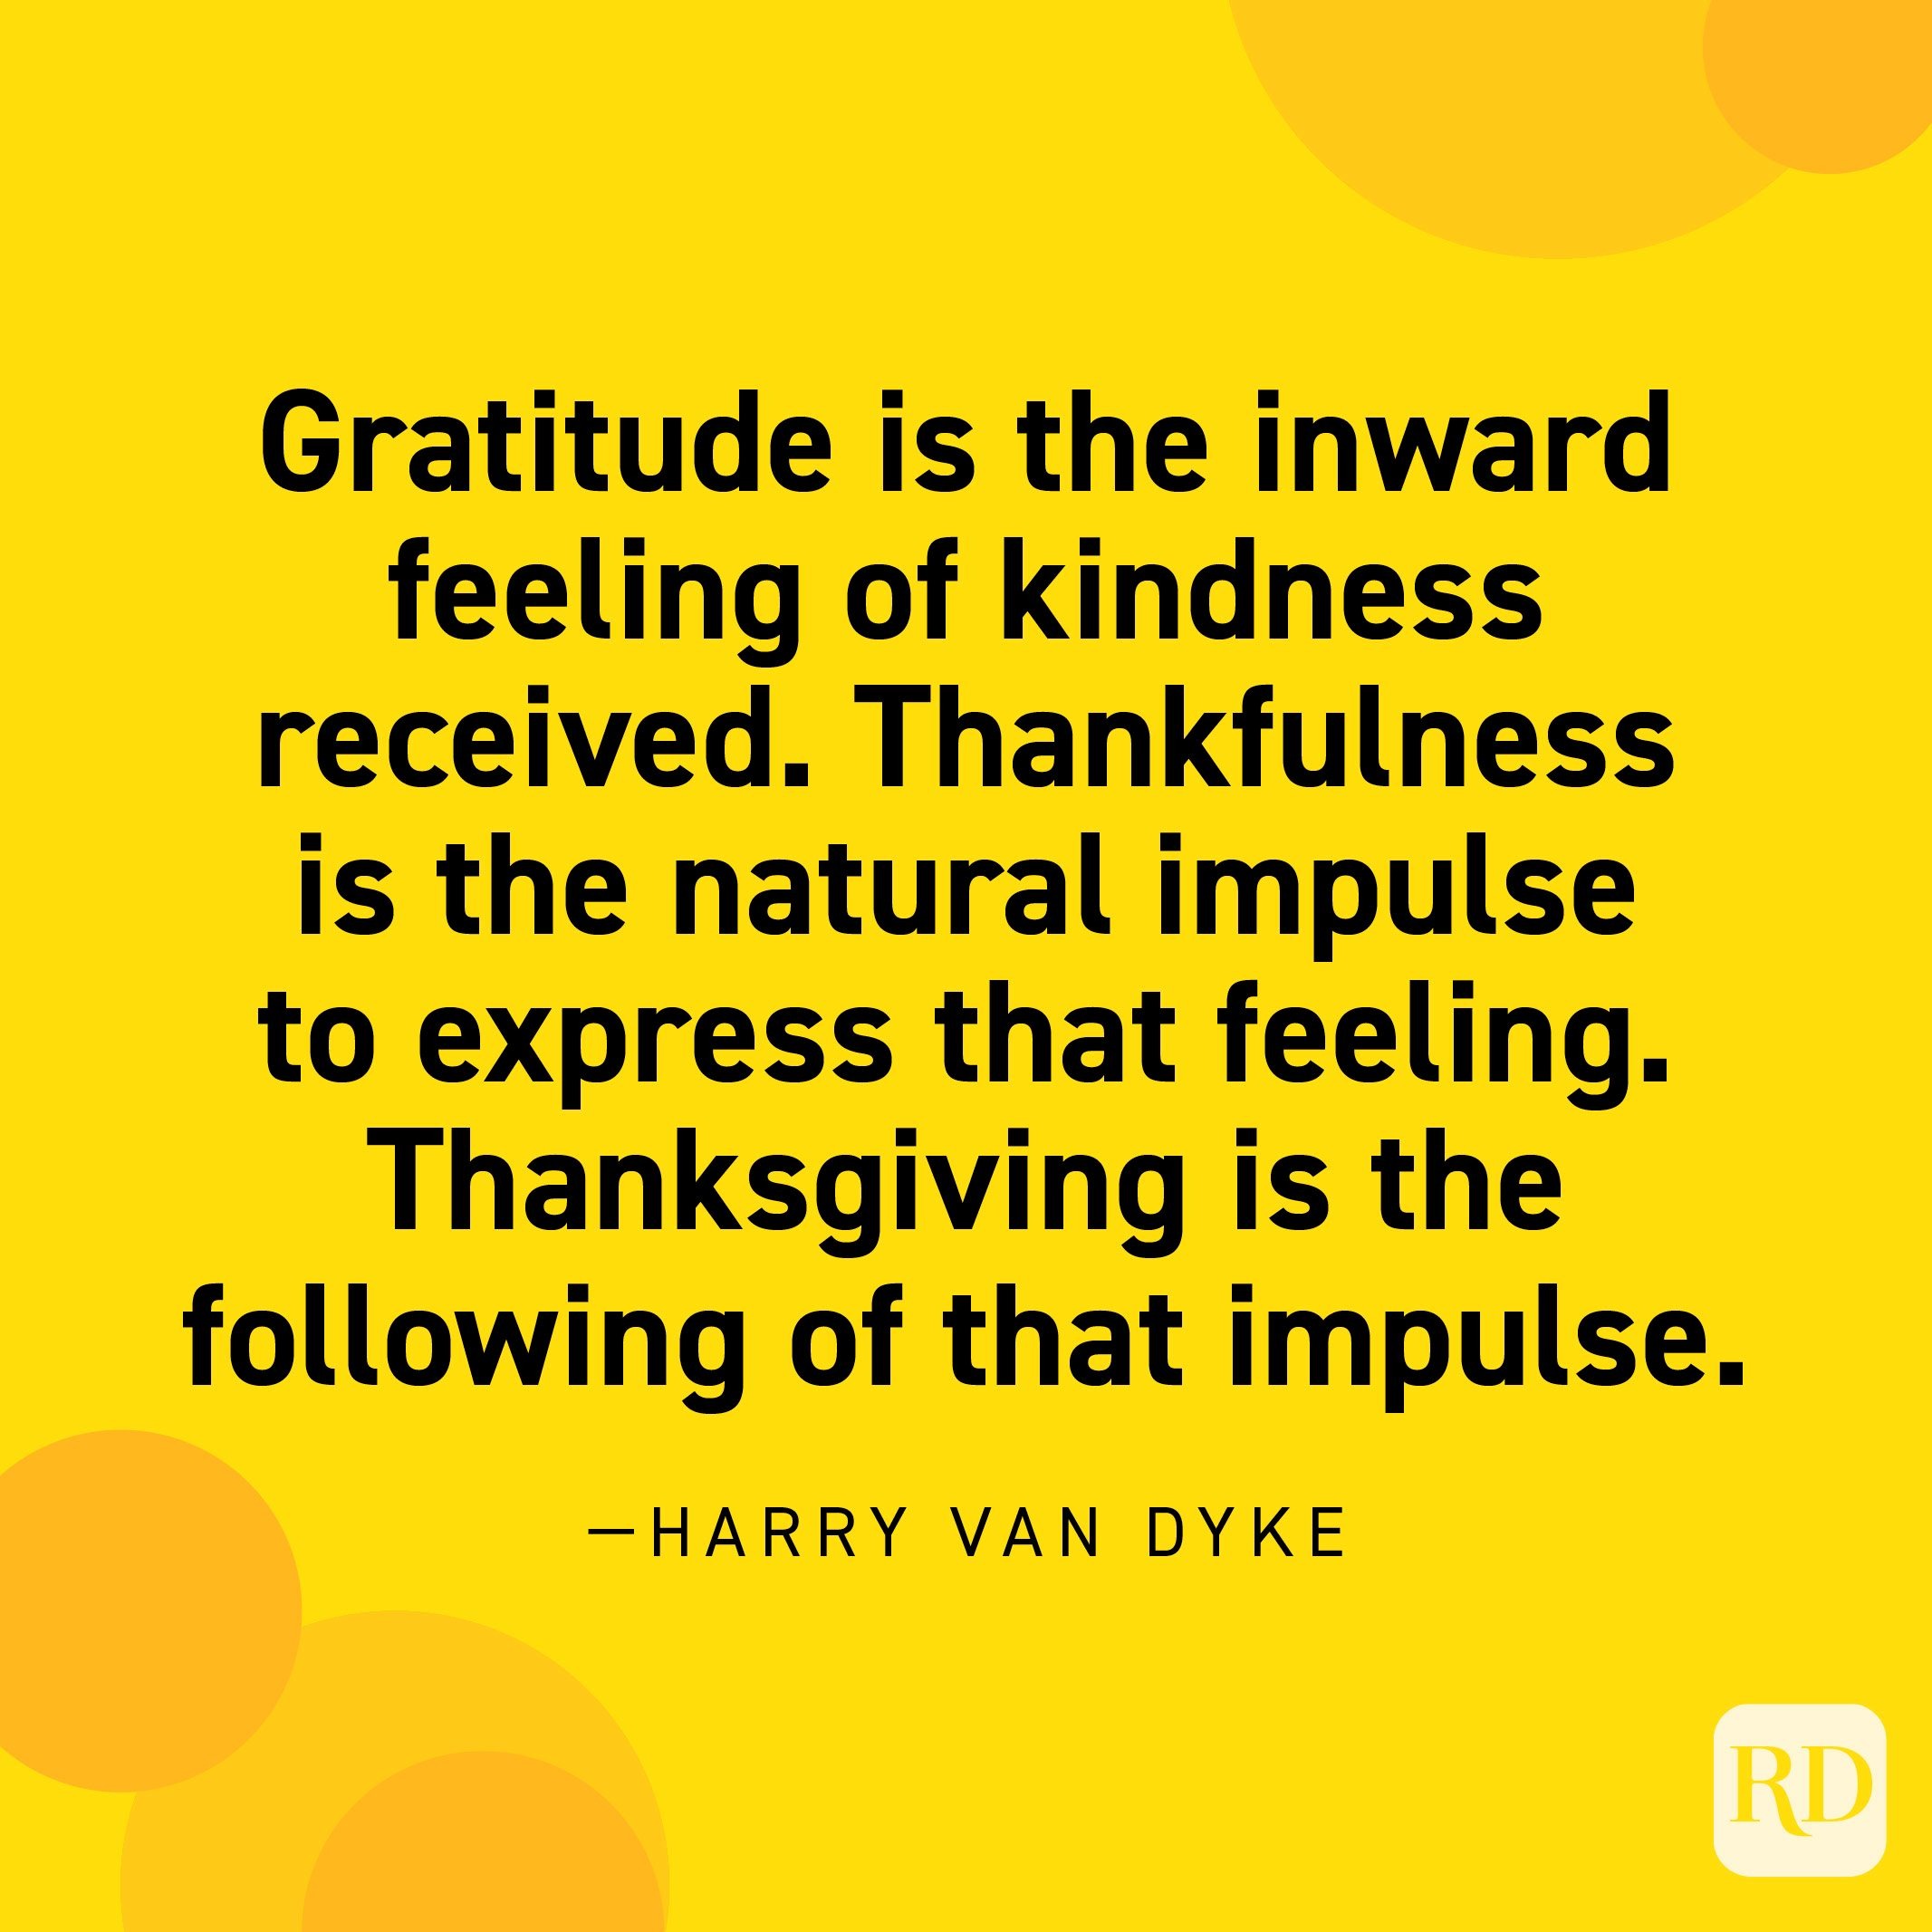 """""""Gratitude is the inward feeling of kindness received. Thankfulness is the natural impulse to express that feeling. Thanksgiving is the following of that impulse."""" —Henry Van Dyke."""